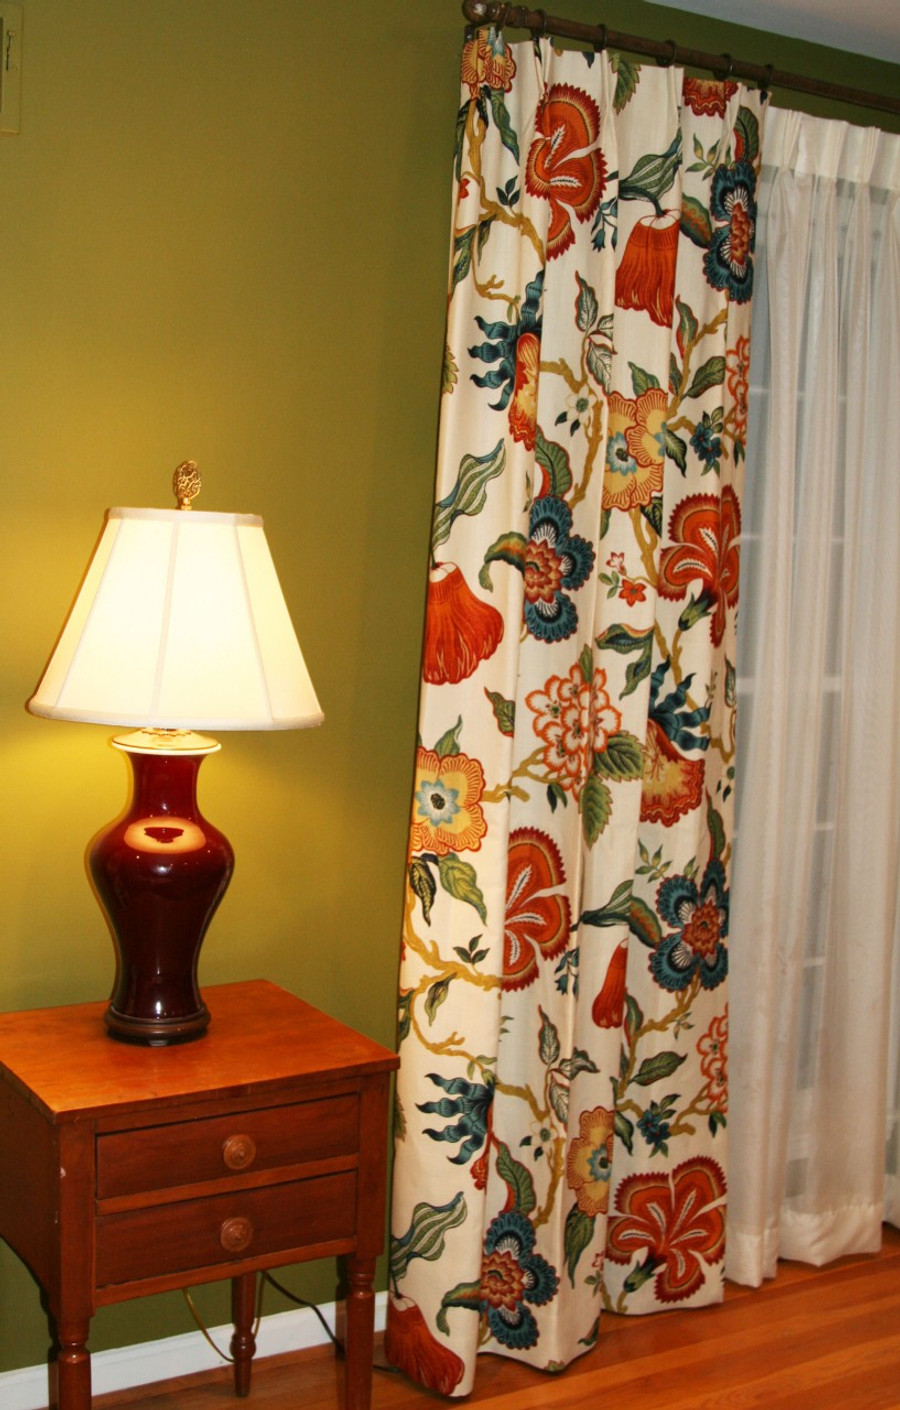 Custom Drapes by Lynn Chalk in Schumacher Celerie Kemble Hot House Flowers Spark installed in clients house.